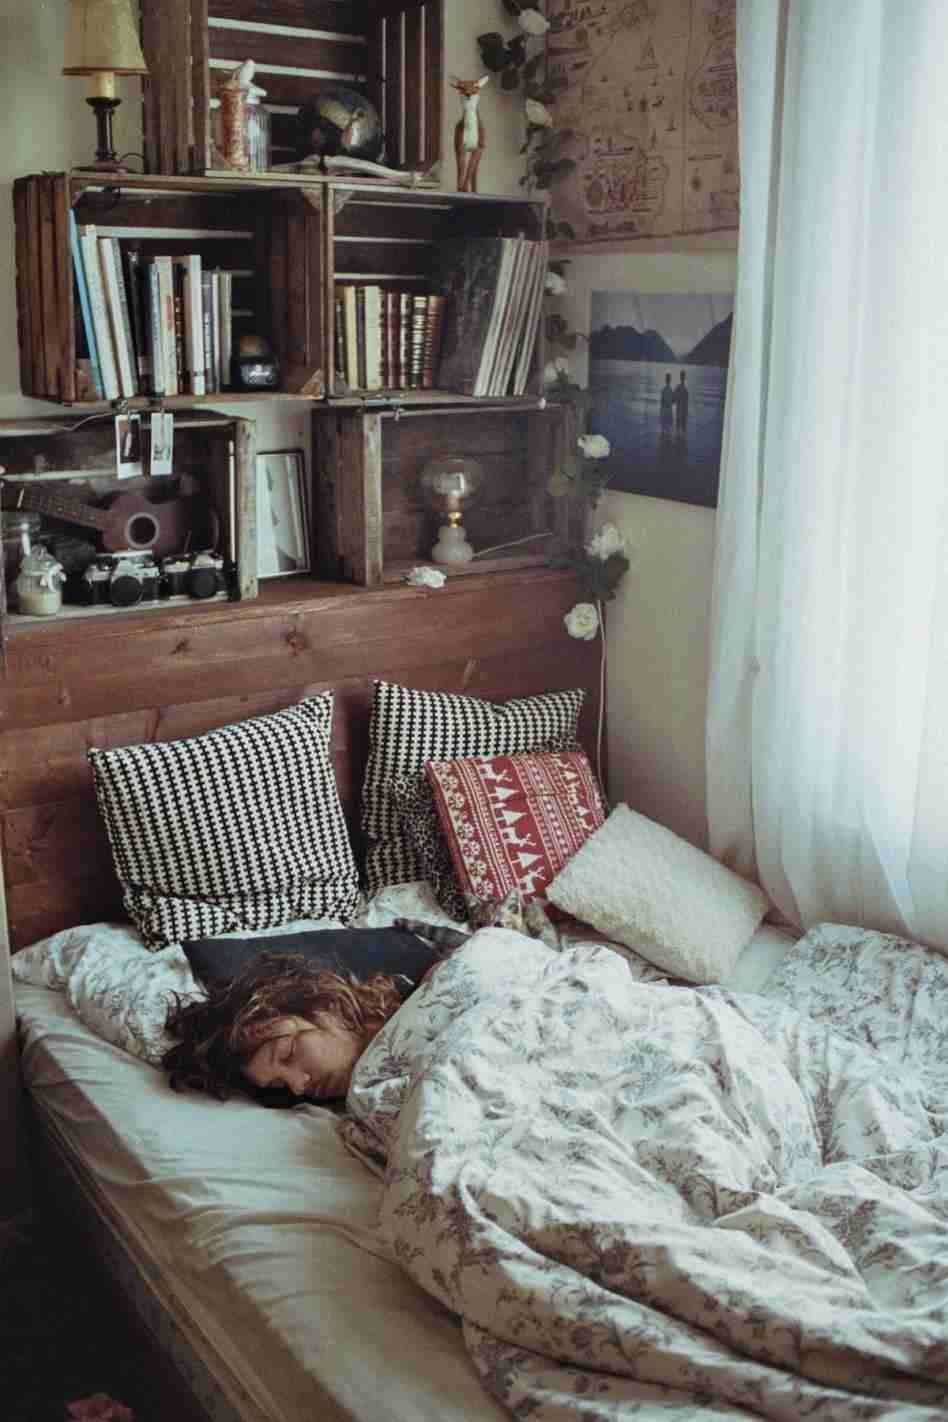 Ikea Bedroom Ideas Tumblr indie bedroom ideas tumblr - bedroom: ikea modern bedroom ideas